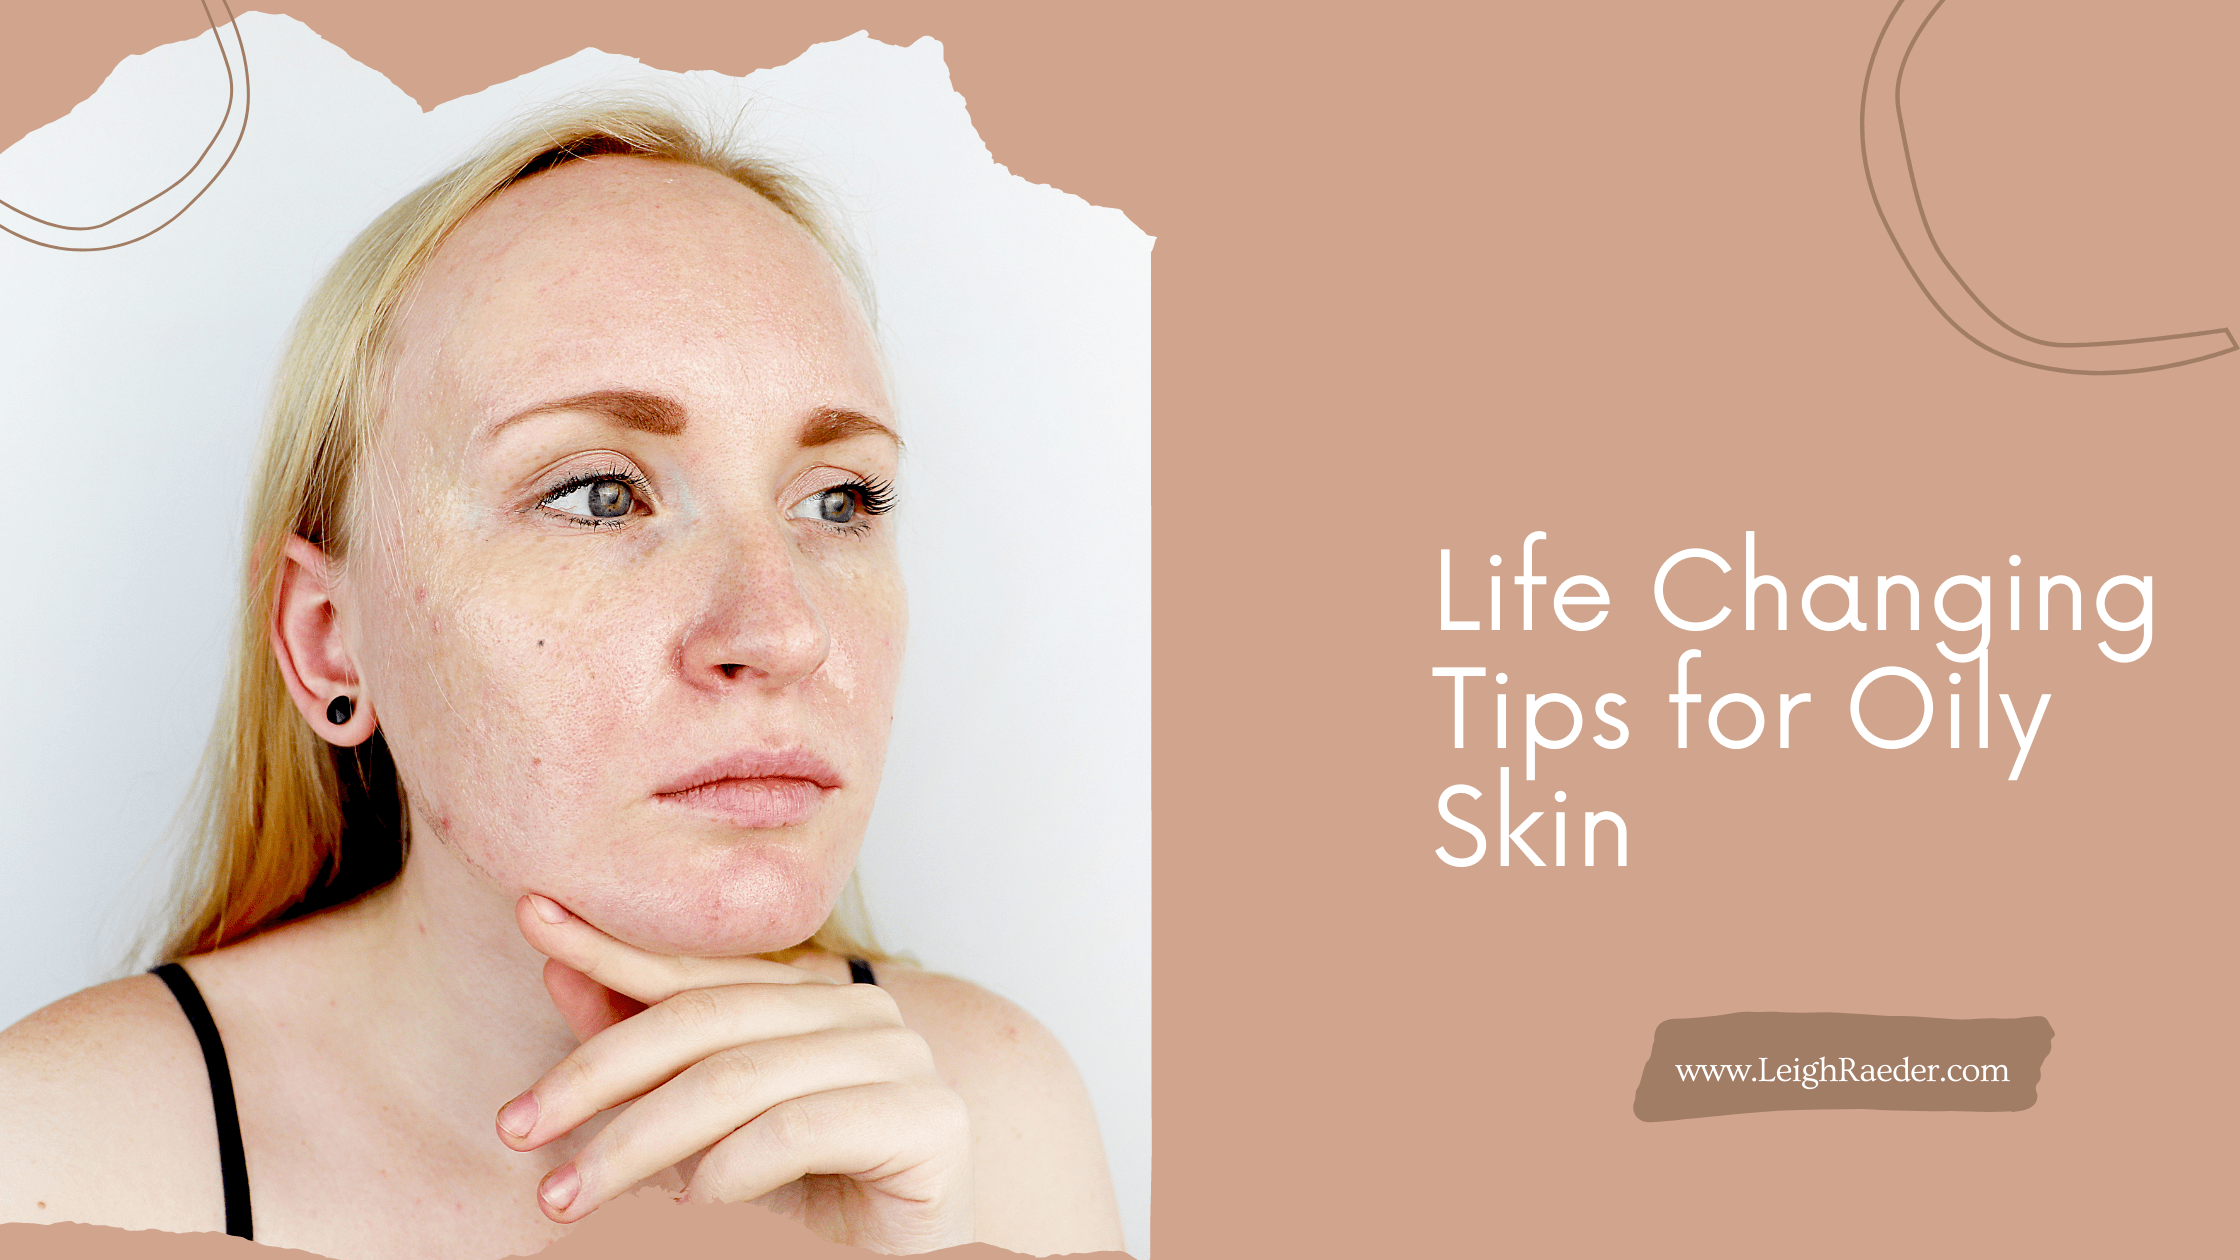 Life Changing Beauty Tips for Oily Skin - All Things Beauty